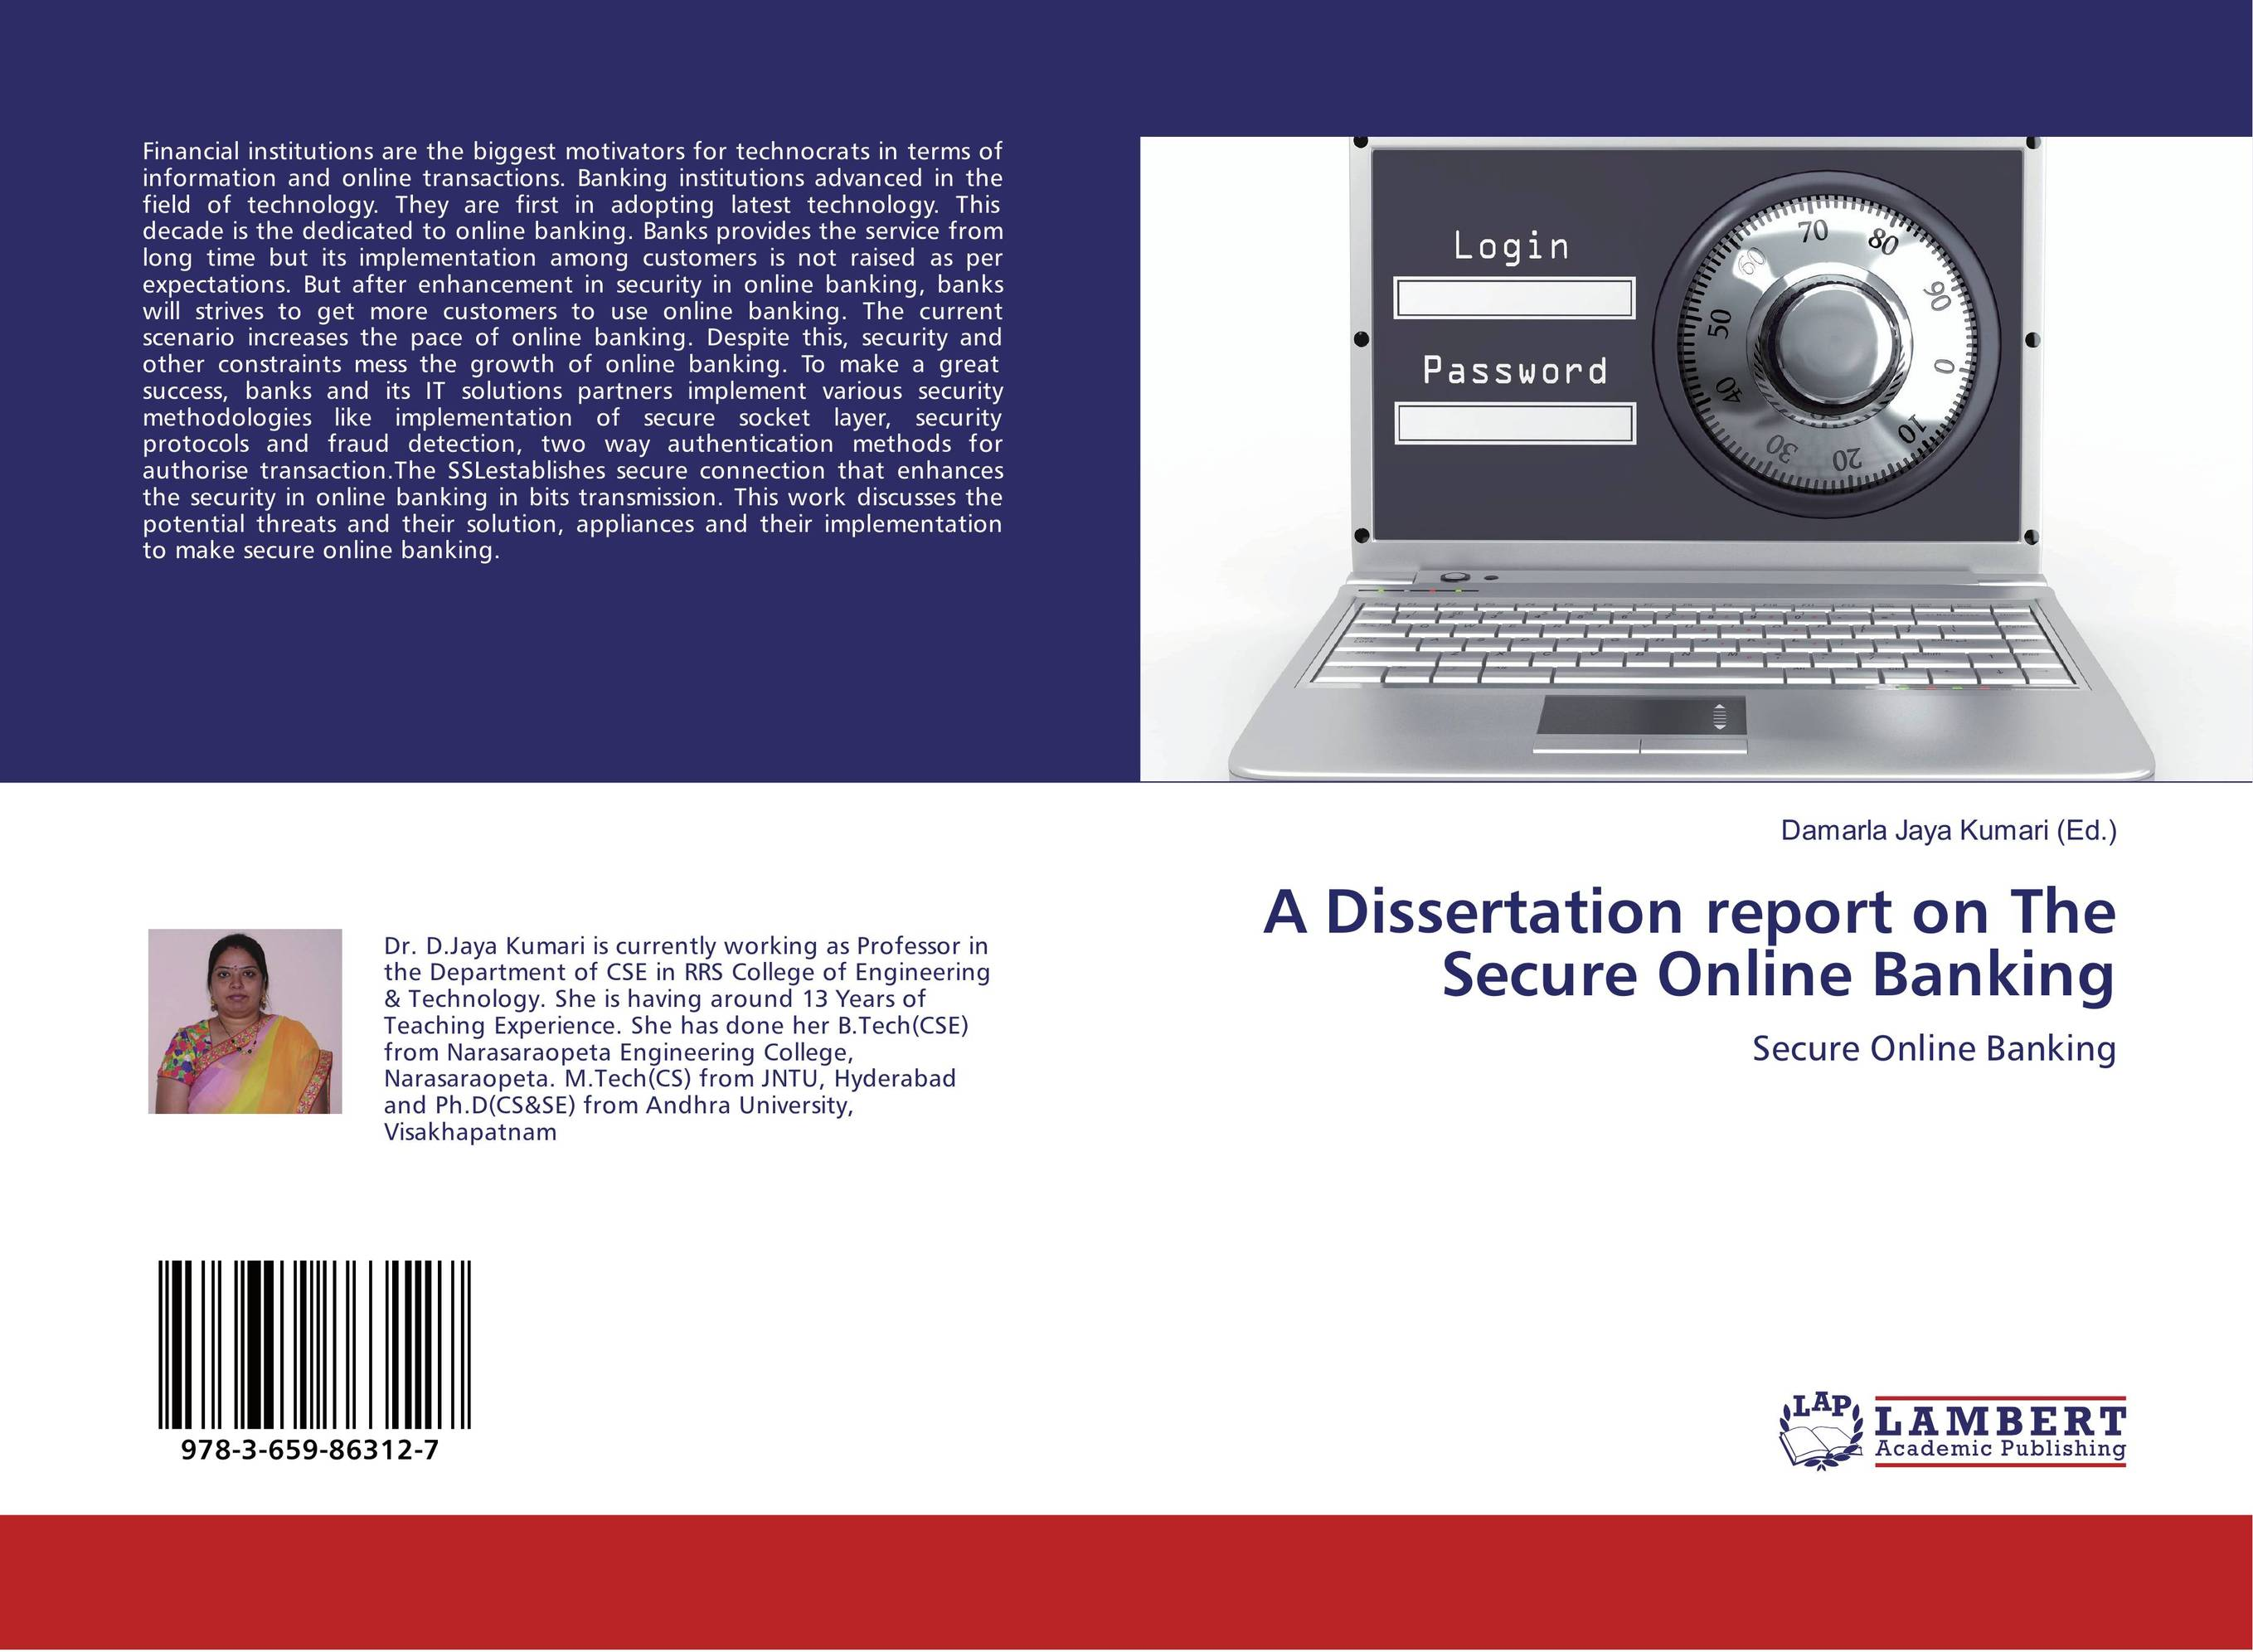 A Dissertation report on The Secure Online Banking belousov a security features of banknotes and other documents methods of authentication manual денежные билеты бланки ценных бумаг и документов